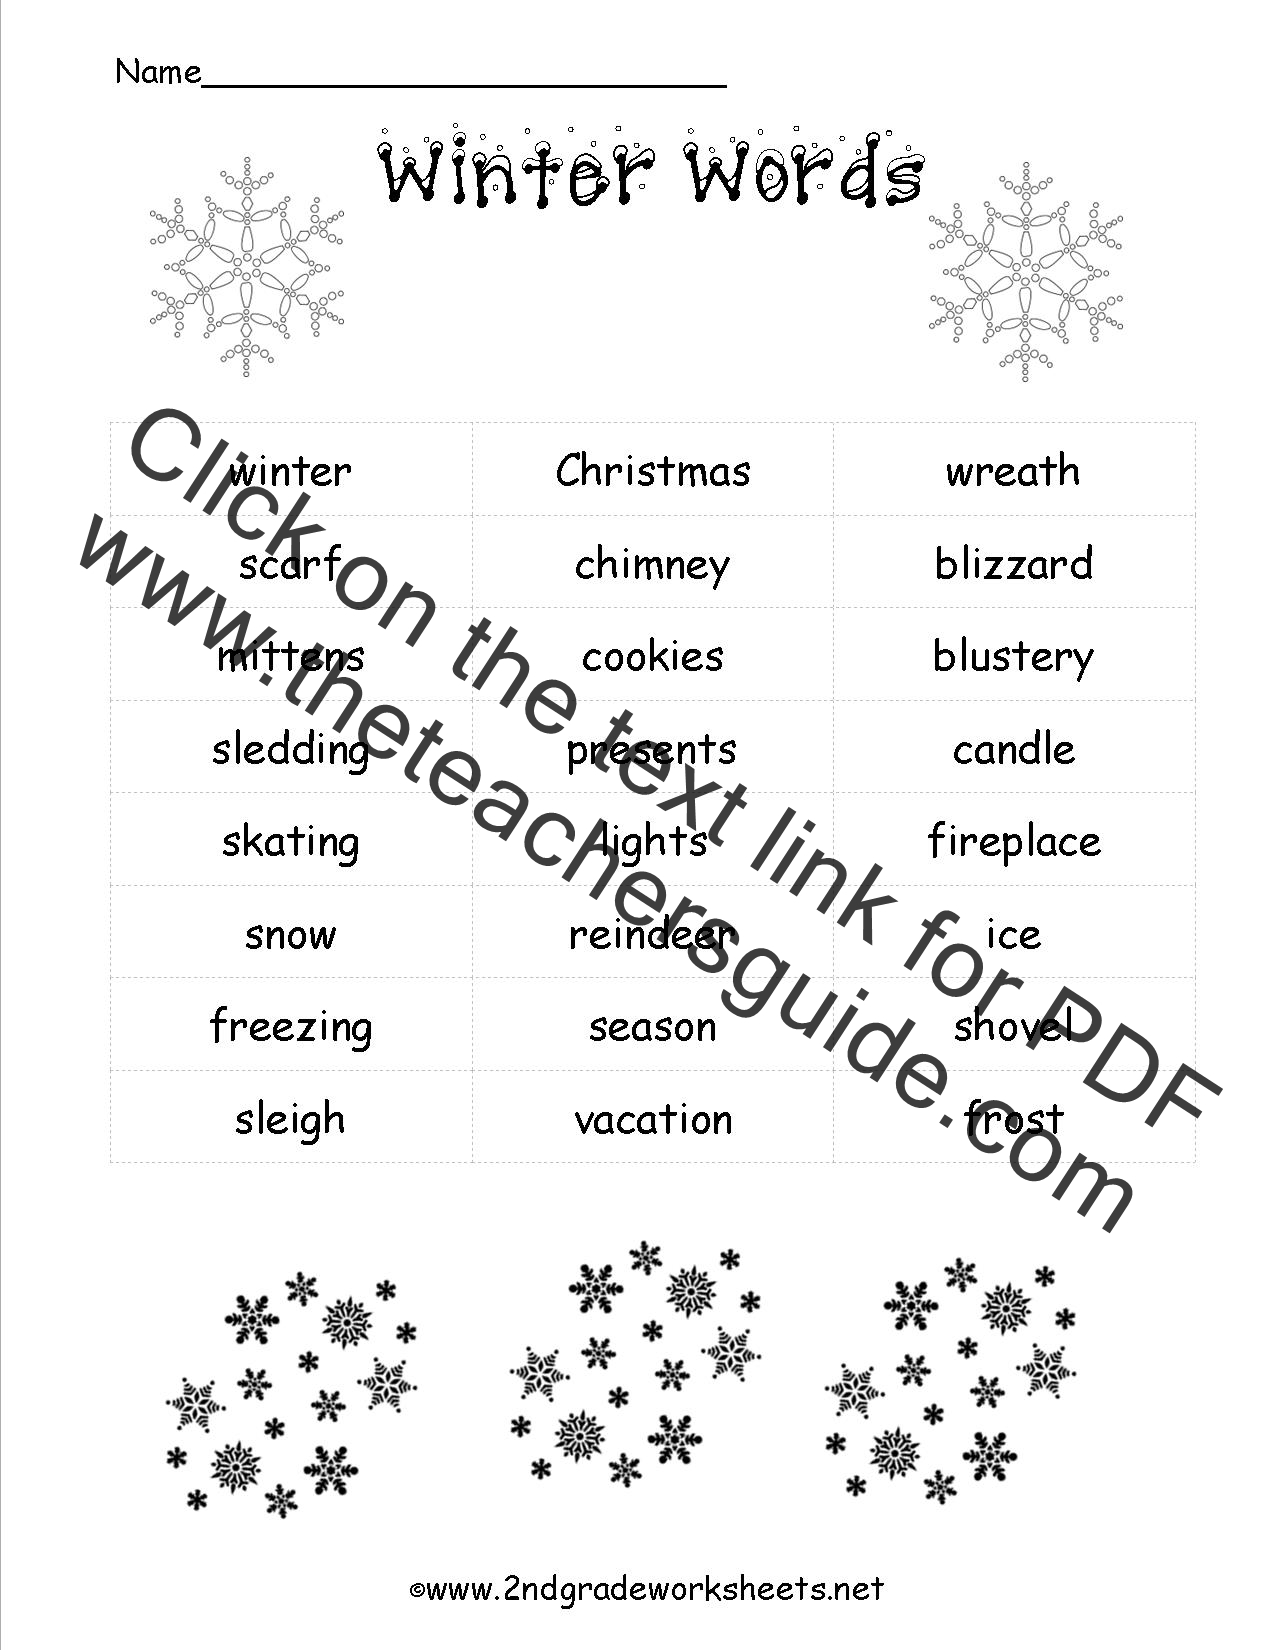 Christmas Worksheets and Printouts – Christmas Worksheets Printables